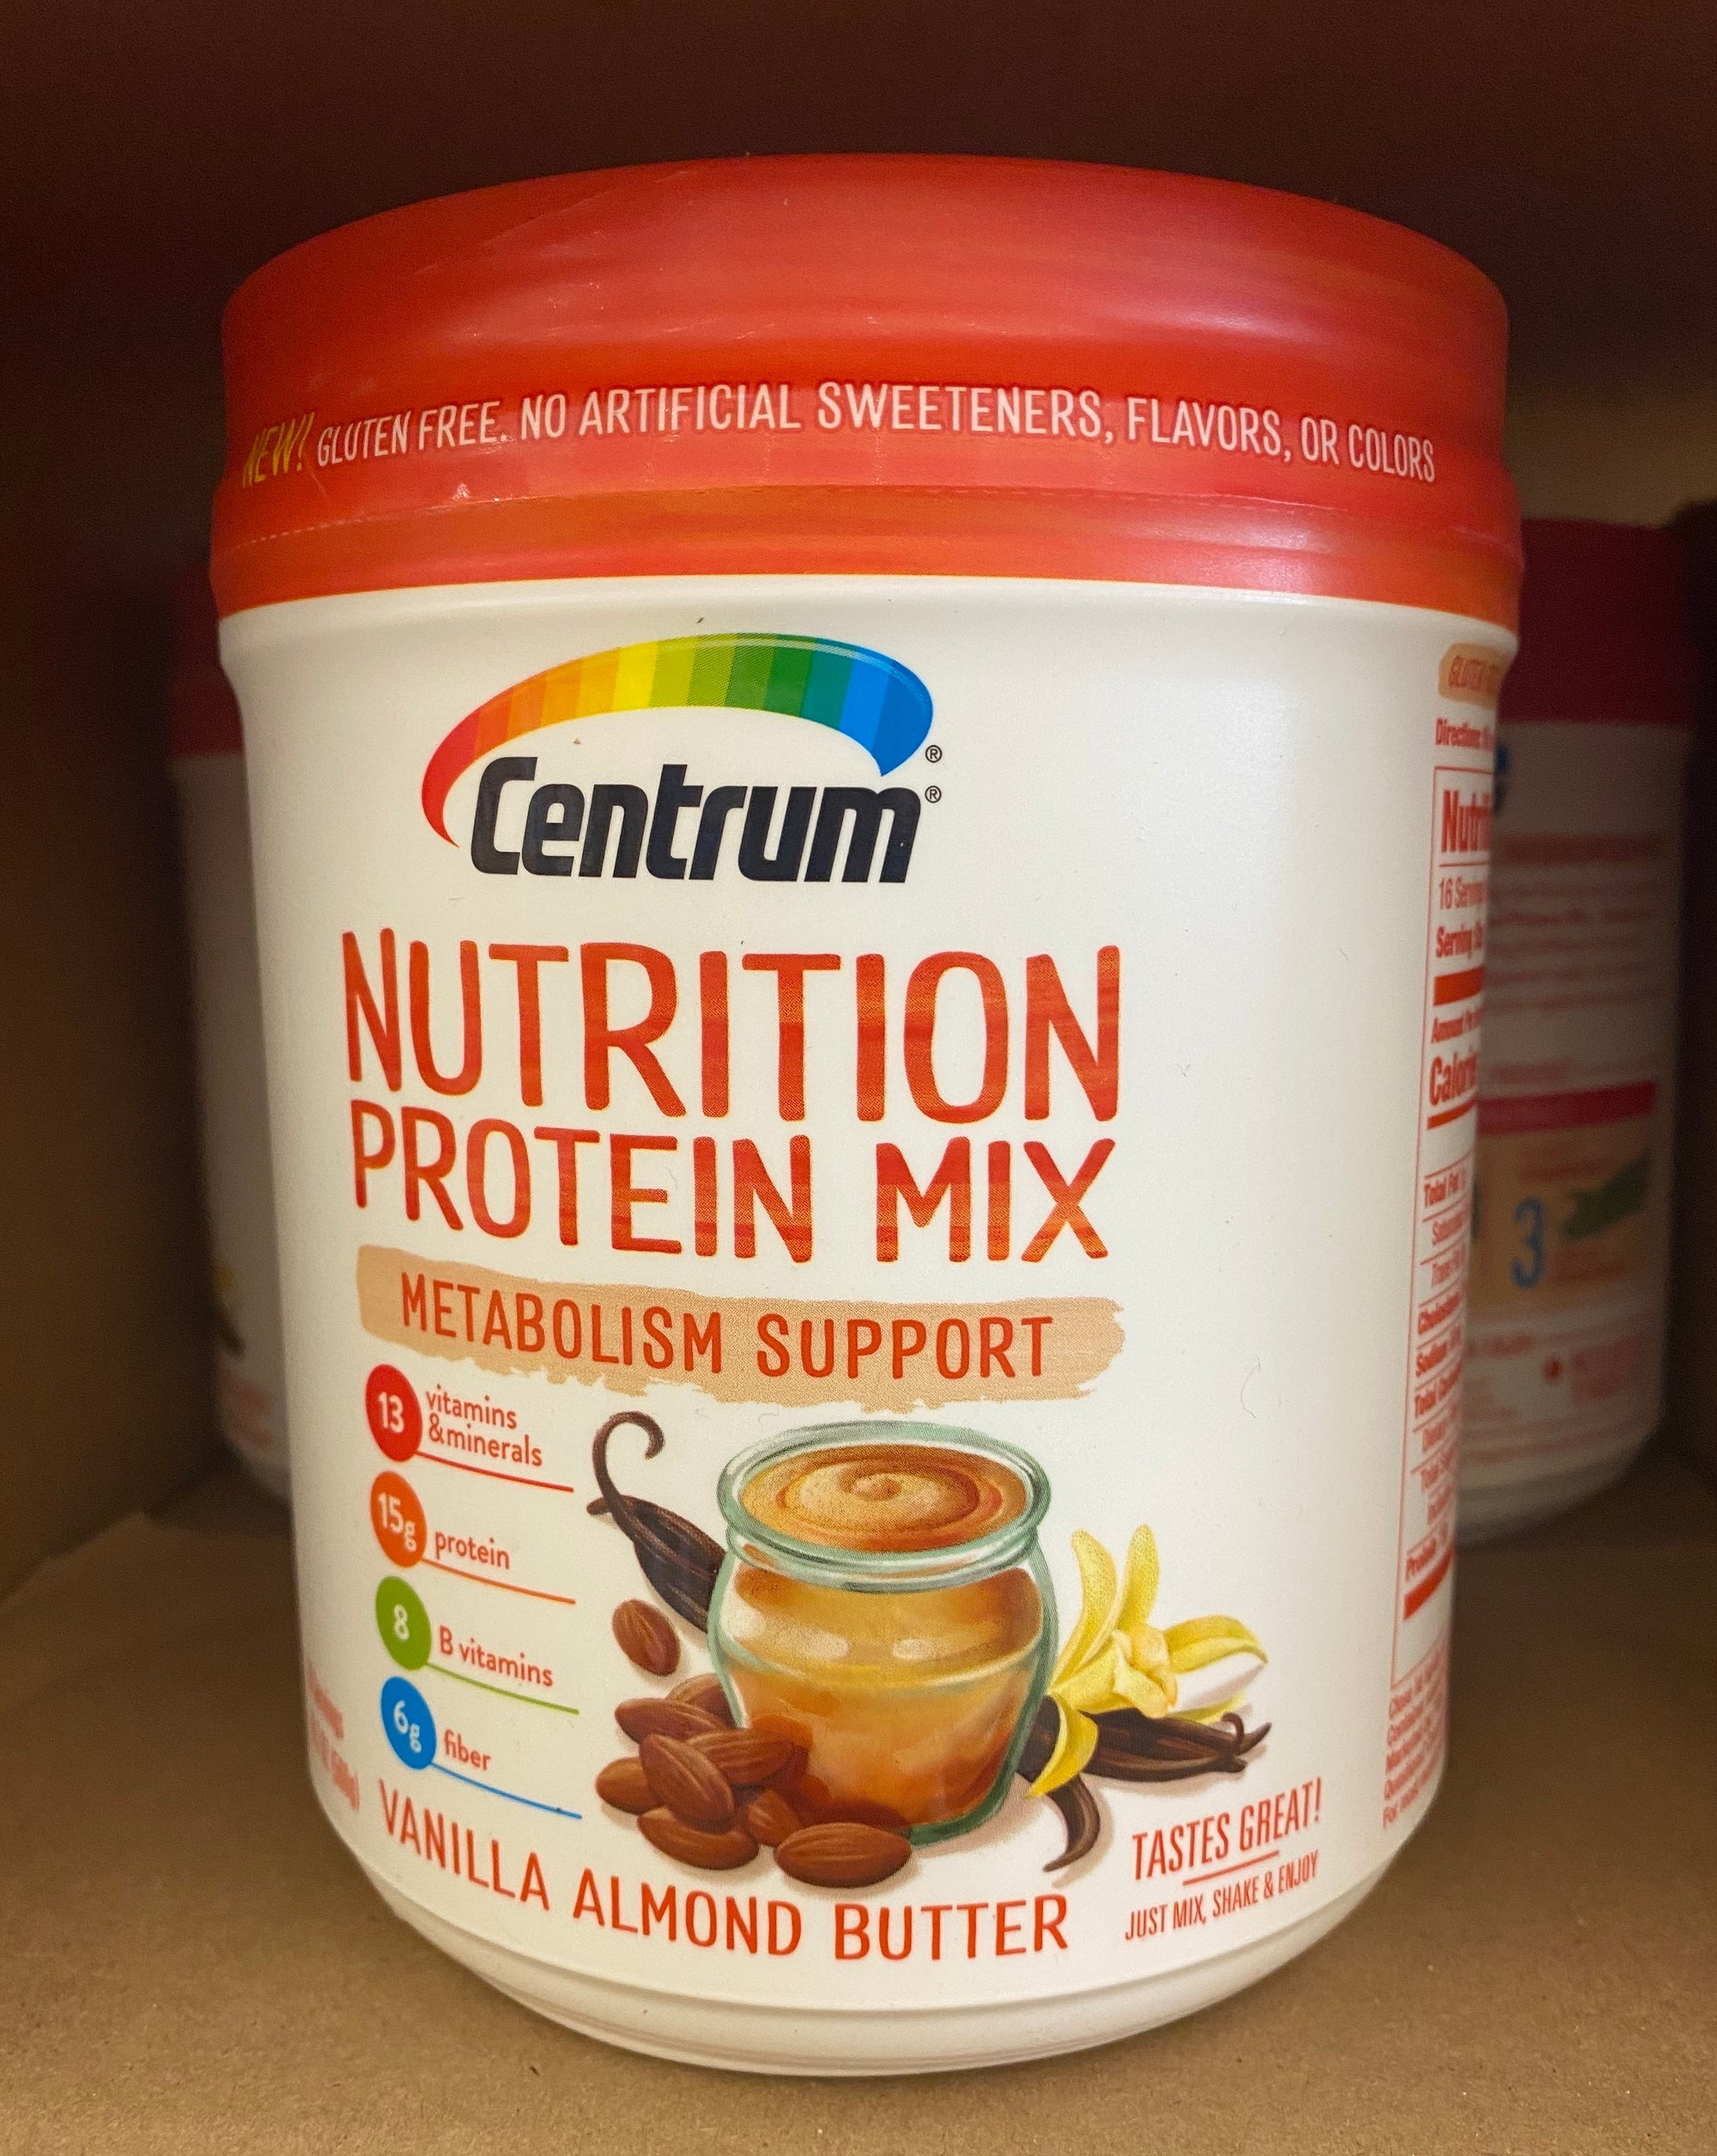 Centrum Nutrition Protein Mix